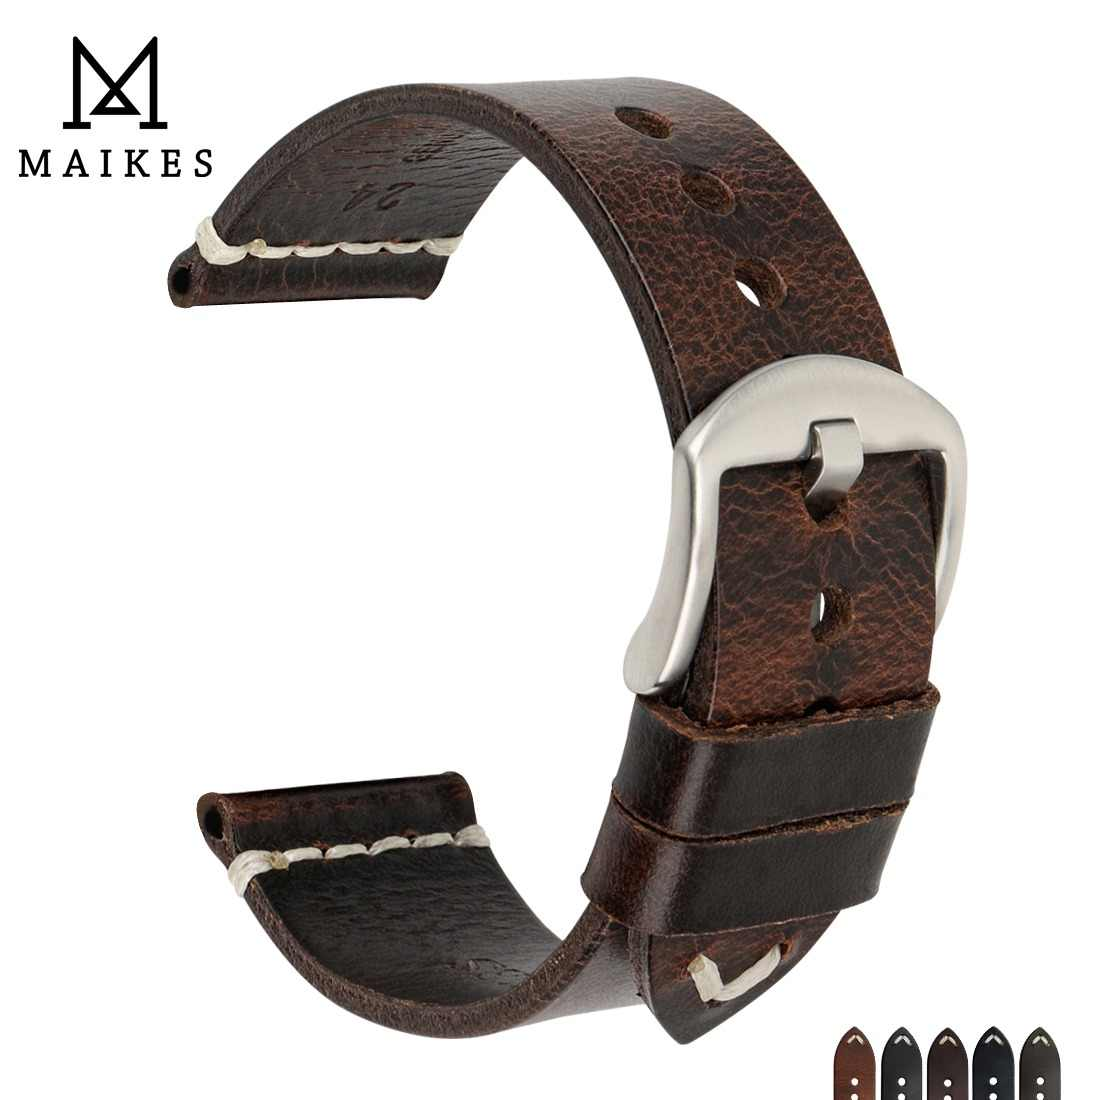 MAIKES Genuine Leather Watchband 20mm 22mm 24mm Watch Accessories Watch Straps Vintage Bracelet Watch Band For CITIZEN Watch